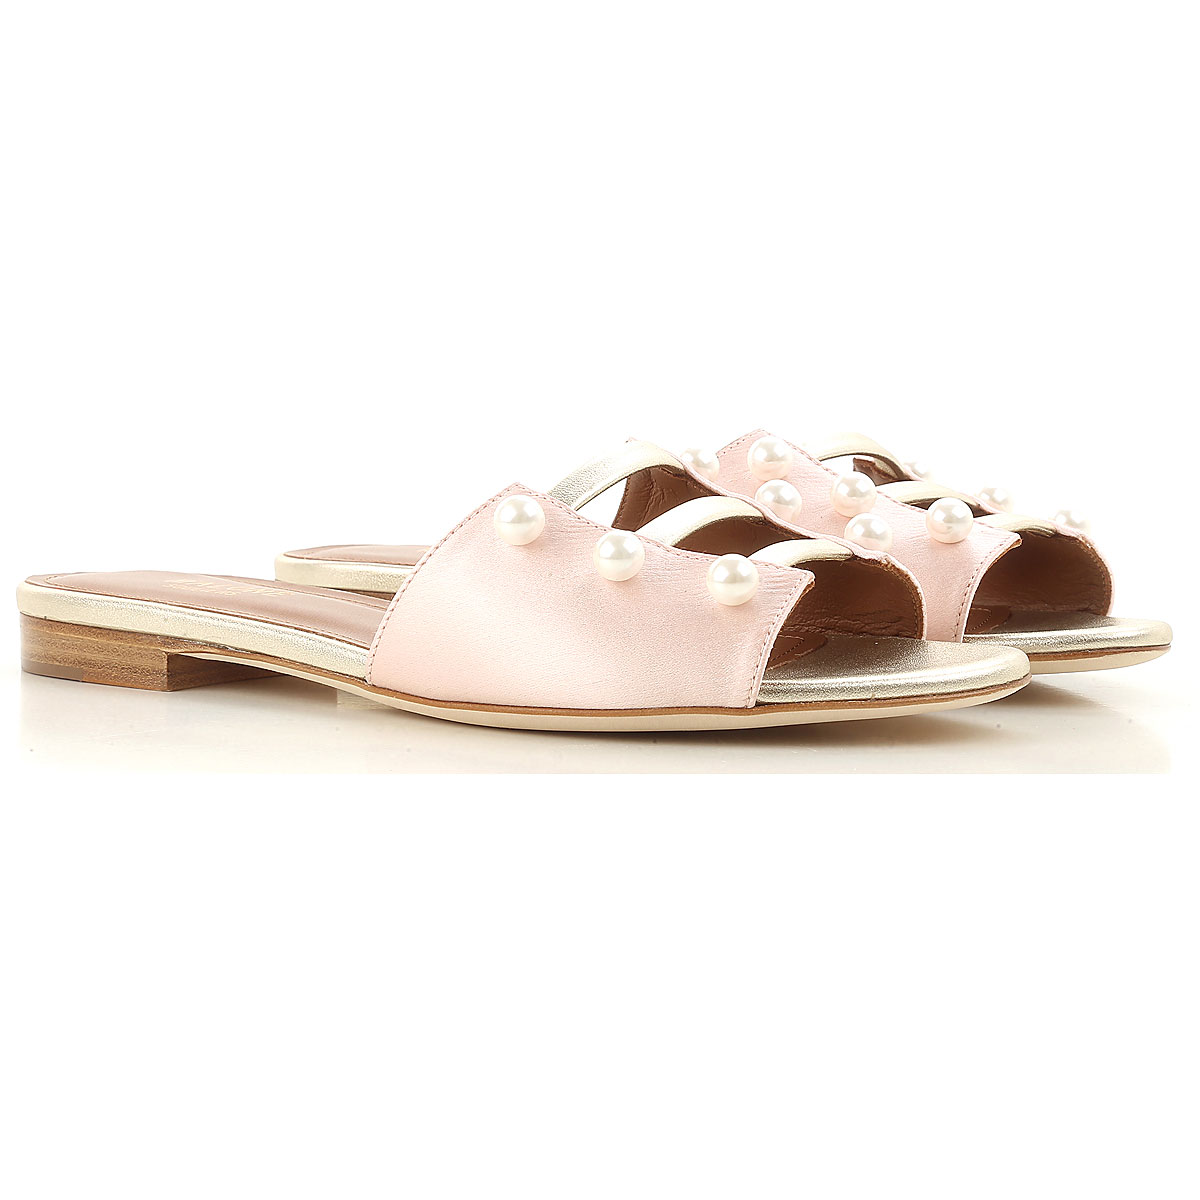 Malone Souliers Sandals for Women On Sale in Outlet, Pink, satin, 2019, 6.5